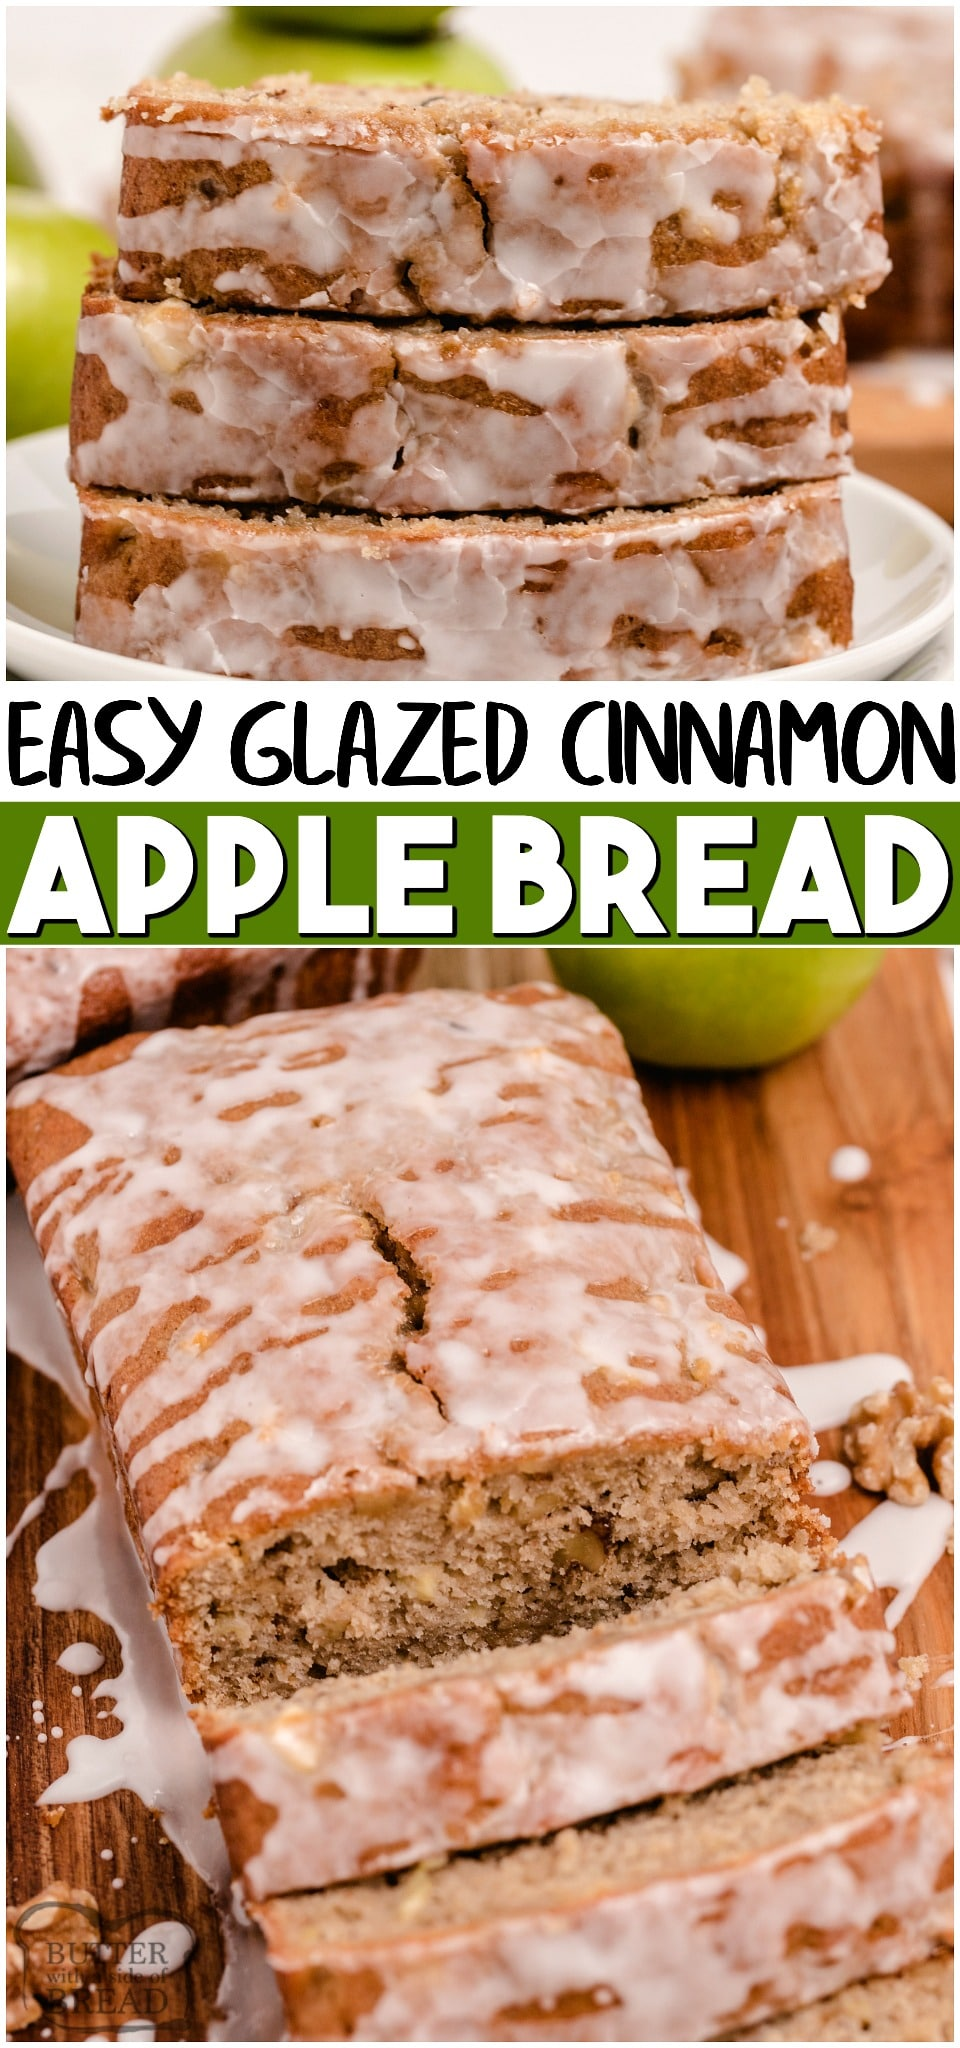 Apple walnut bread is a sweet apple bread recipe with walnuts! Perfect apple quick bread recipe with a light glaze that everyone loves!